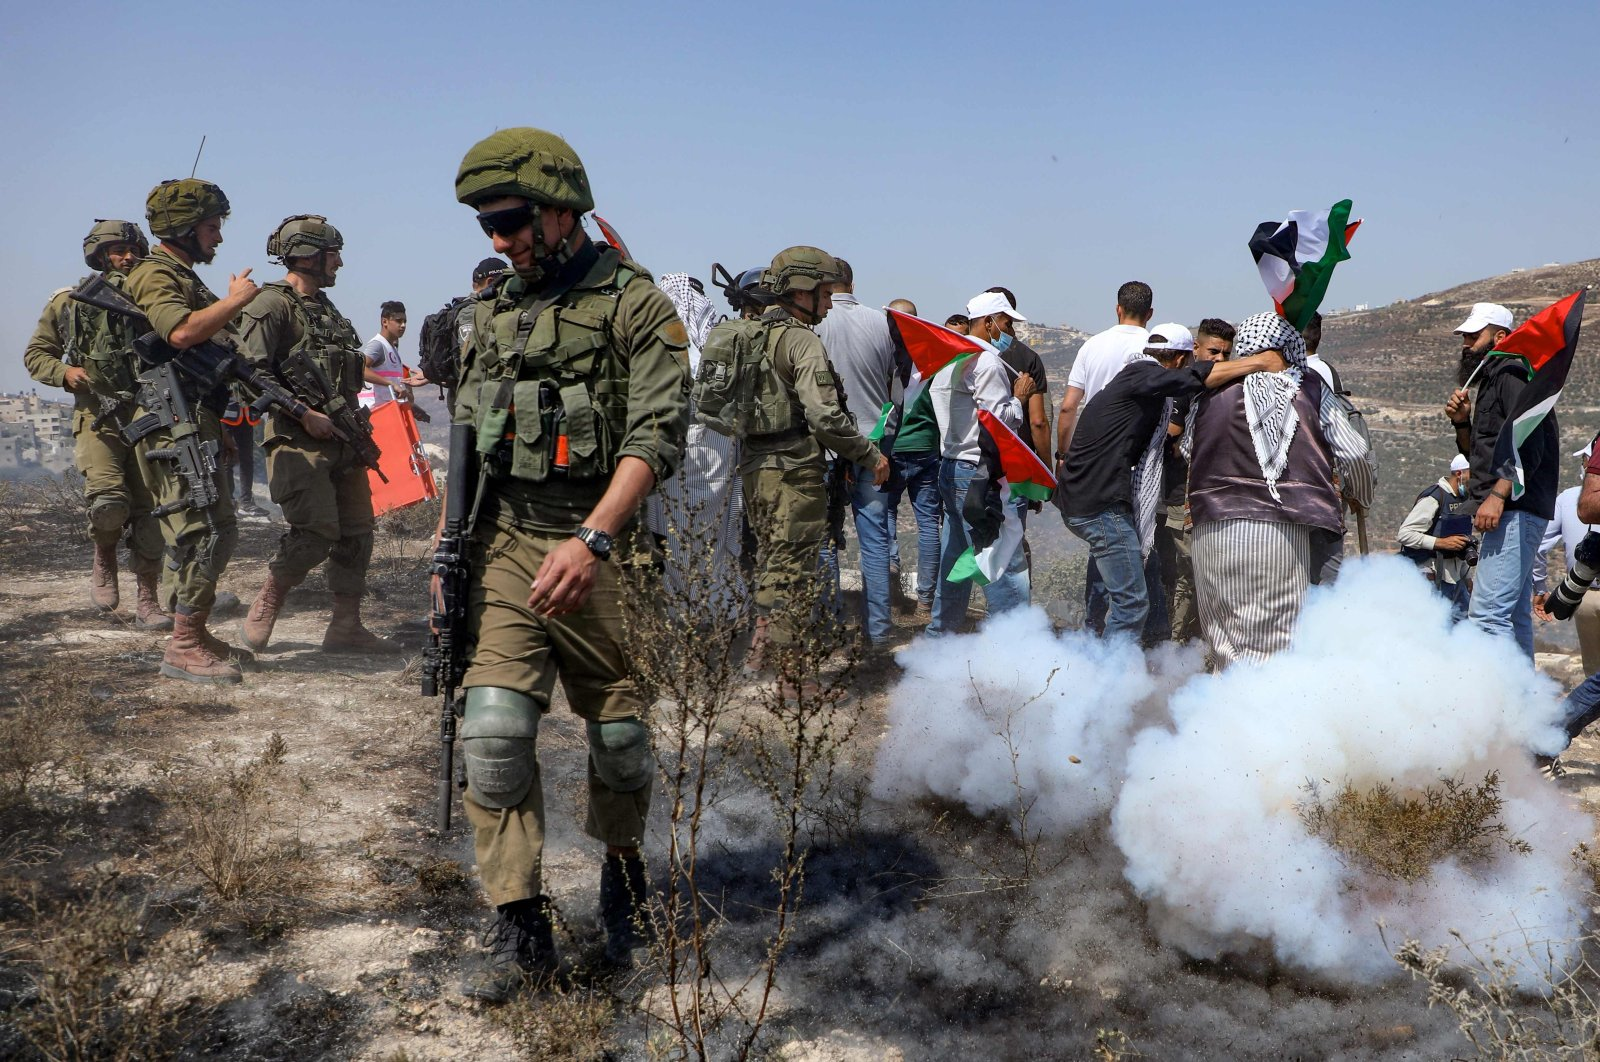 Israeli security forces intervene as Palestinians protest against Jewish settlements and the normalization of ties with two Arab states in Asira al-Qibliya in the Israeli-occupied West Bank, Palestine, Sept. 18, 2020. (AFP Photo)